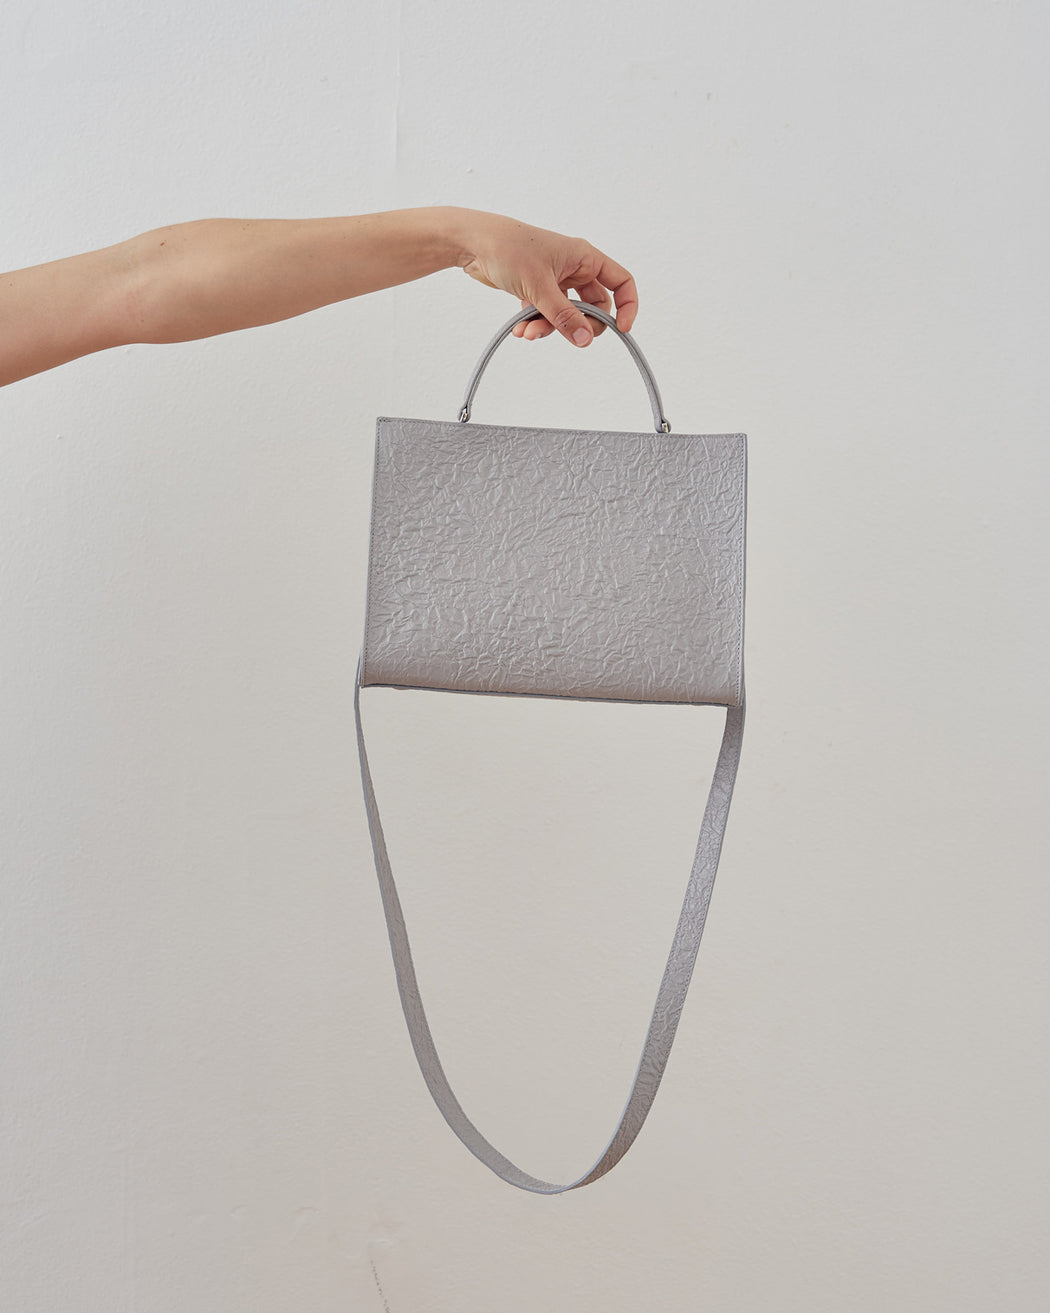 Zilla Wrinkled Leather Small Square Bag